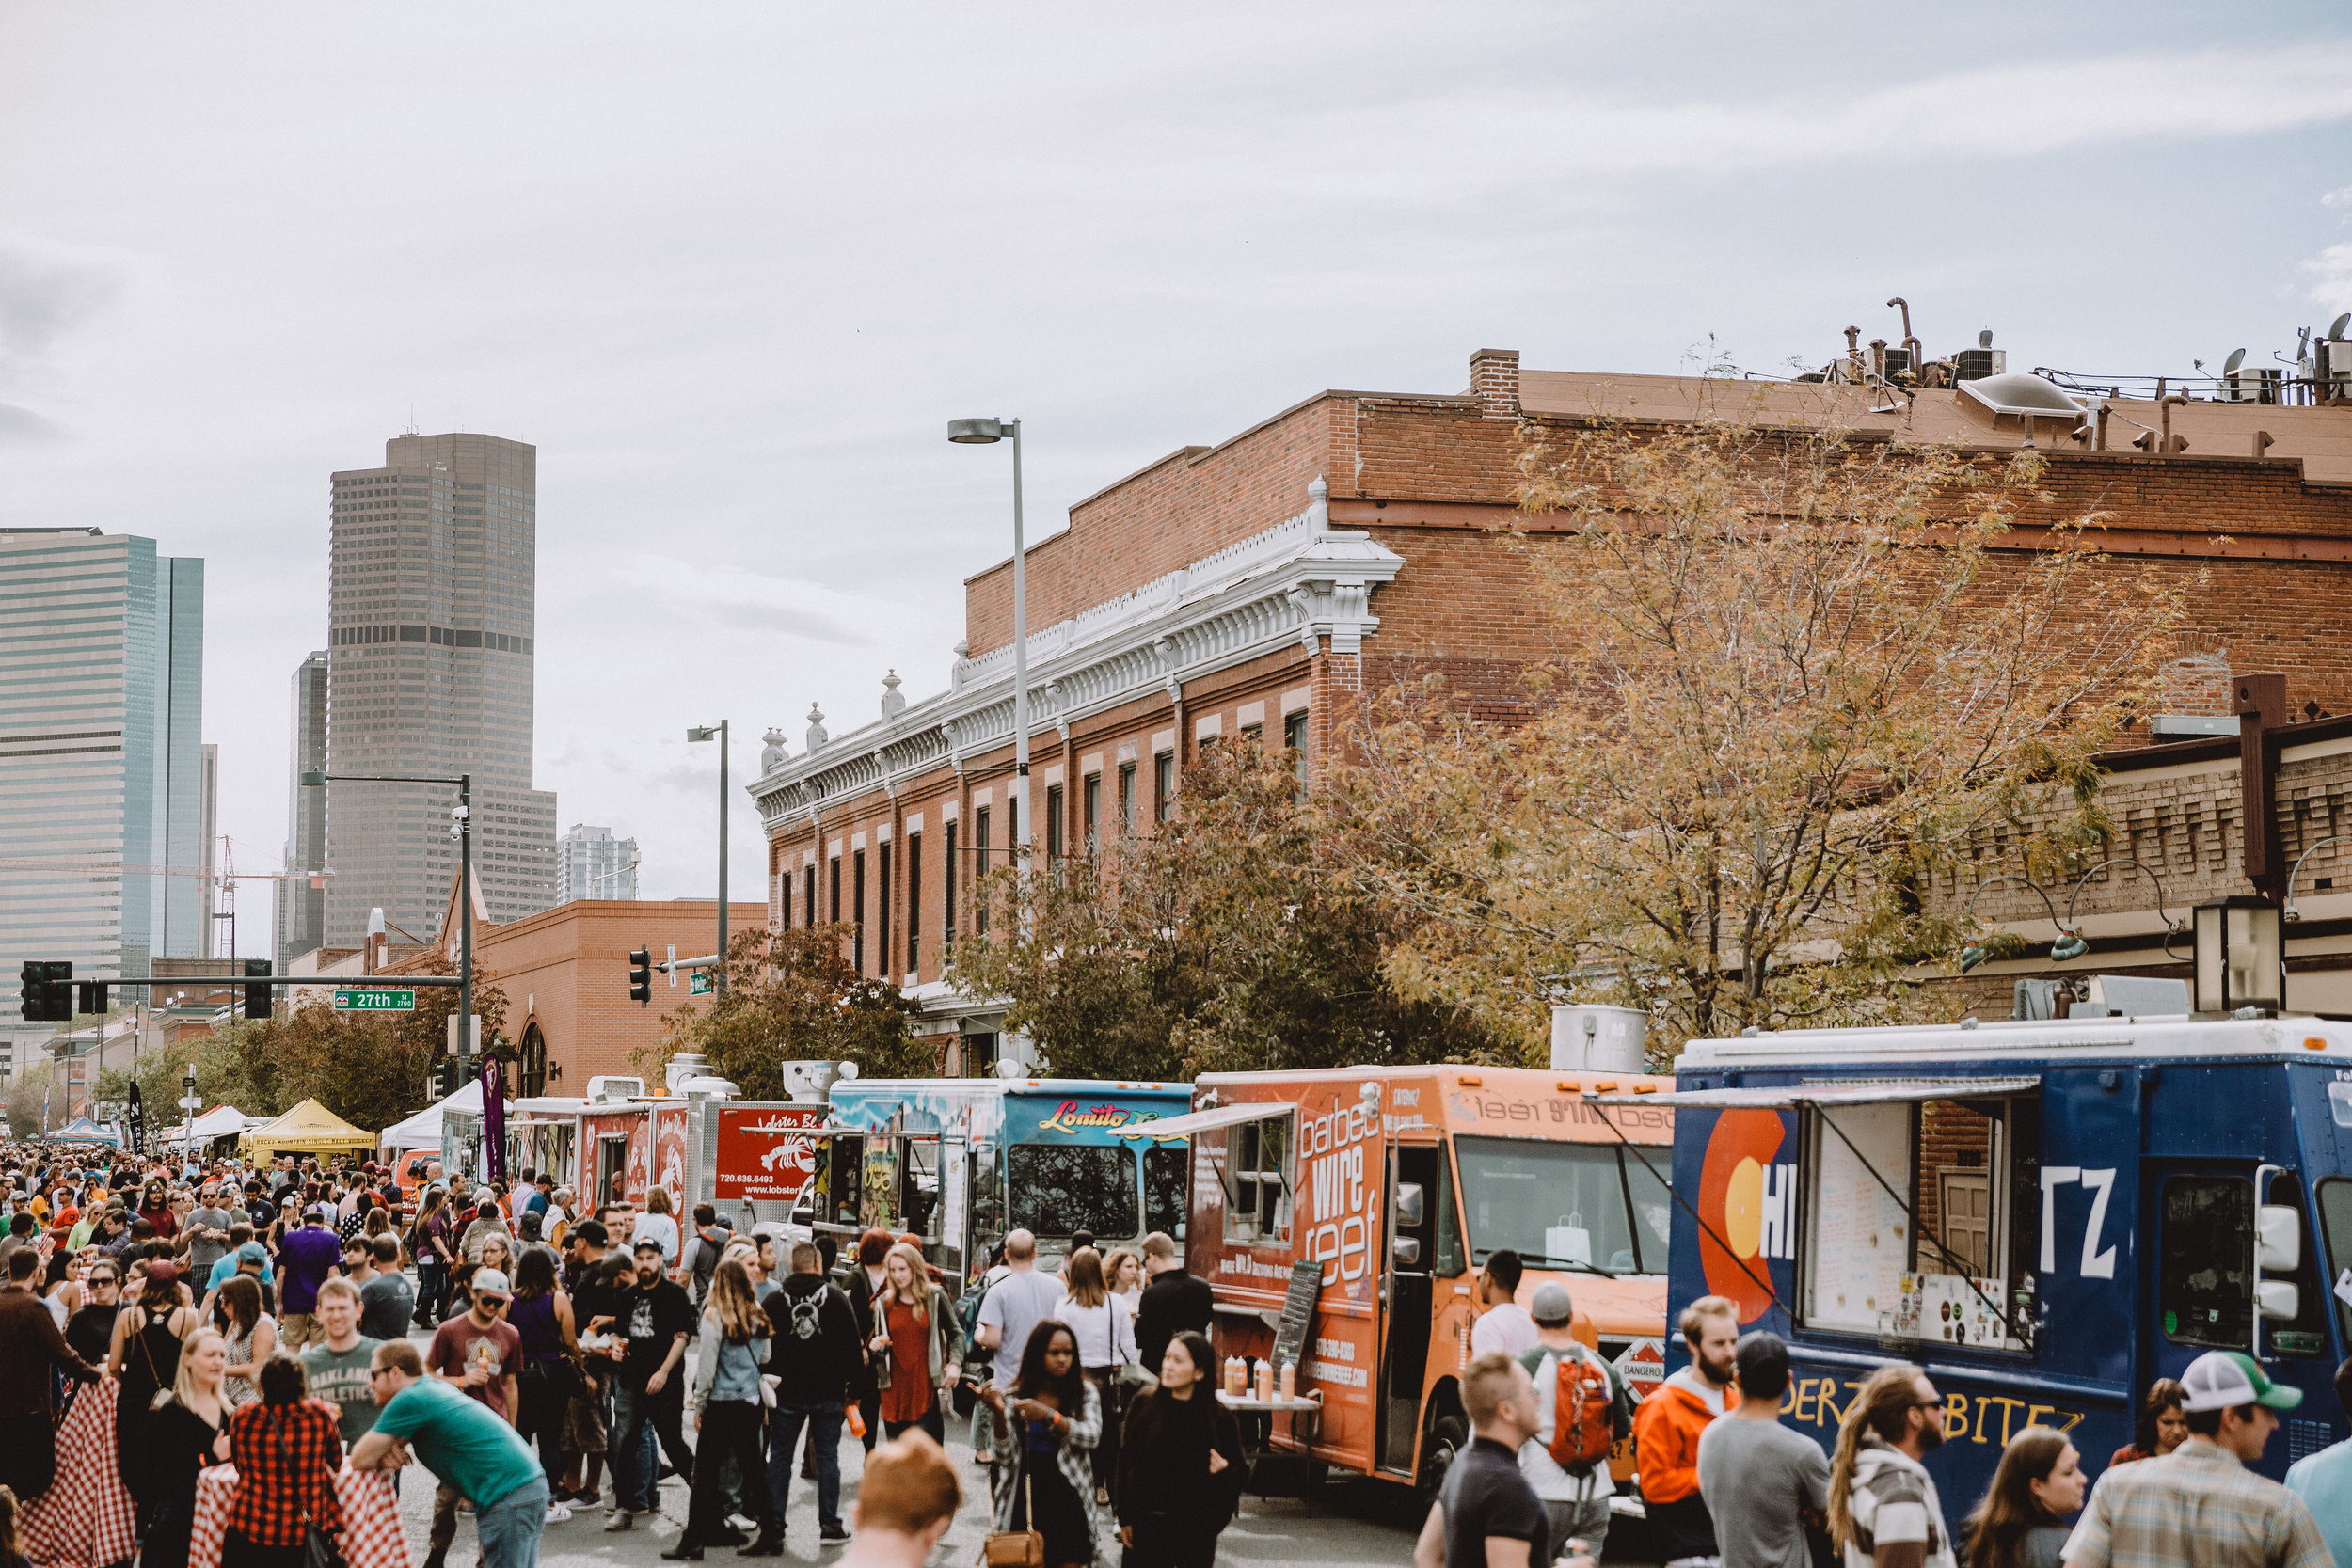 TRUCKS - Dozens of local food trucks lined Welton Street proudly serving thousands of people everything from pizza and burgers, to seafood and international cuisine. A token system kept lines short and fast, so no one was left hungry!